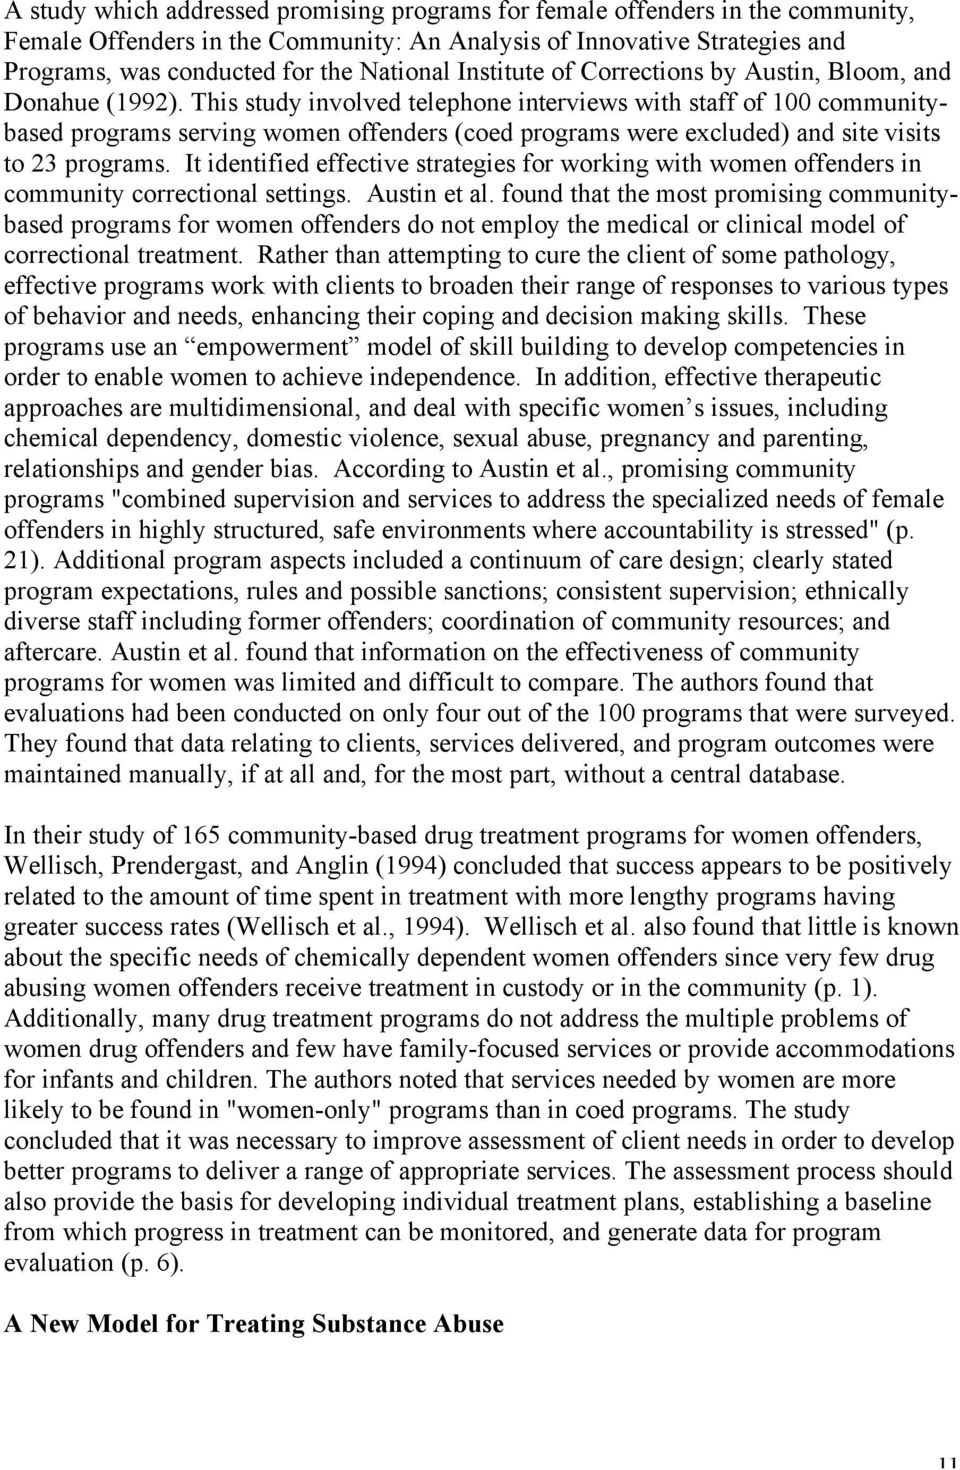 This study involved telephone interviews with staff of 100 communitybased programs serving women offenders (coed programs were excluded) and site visits to 23 programs.